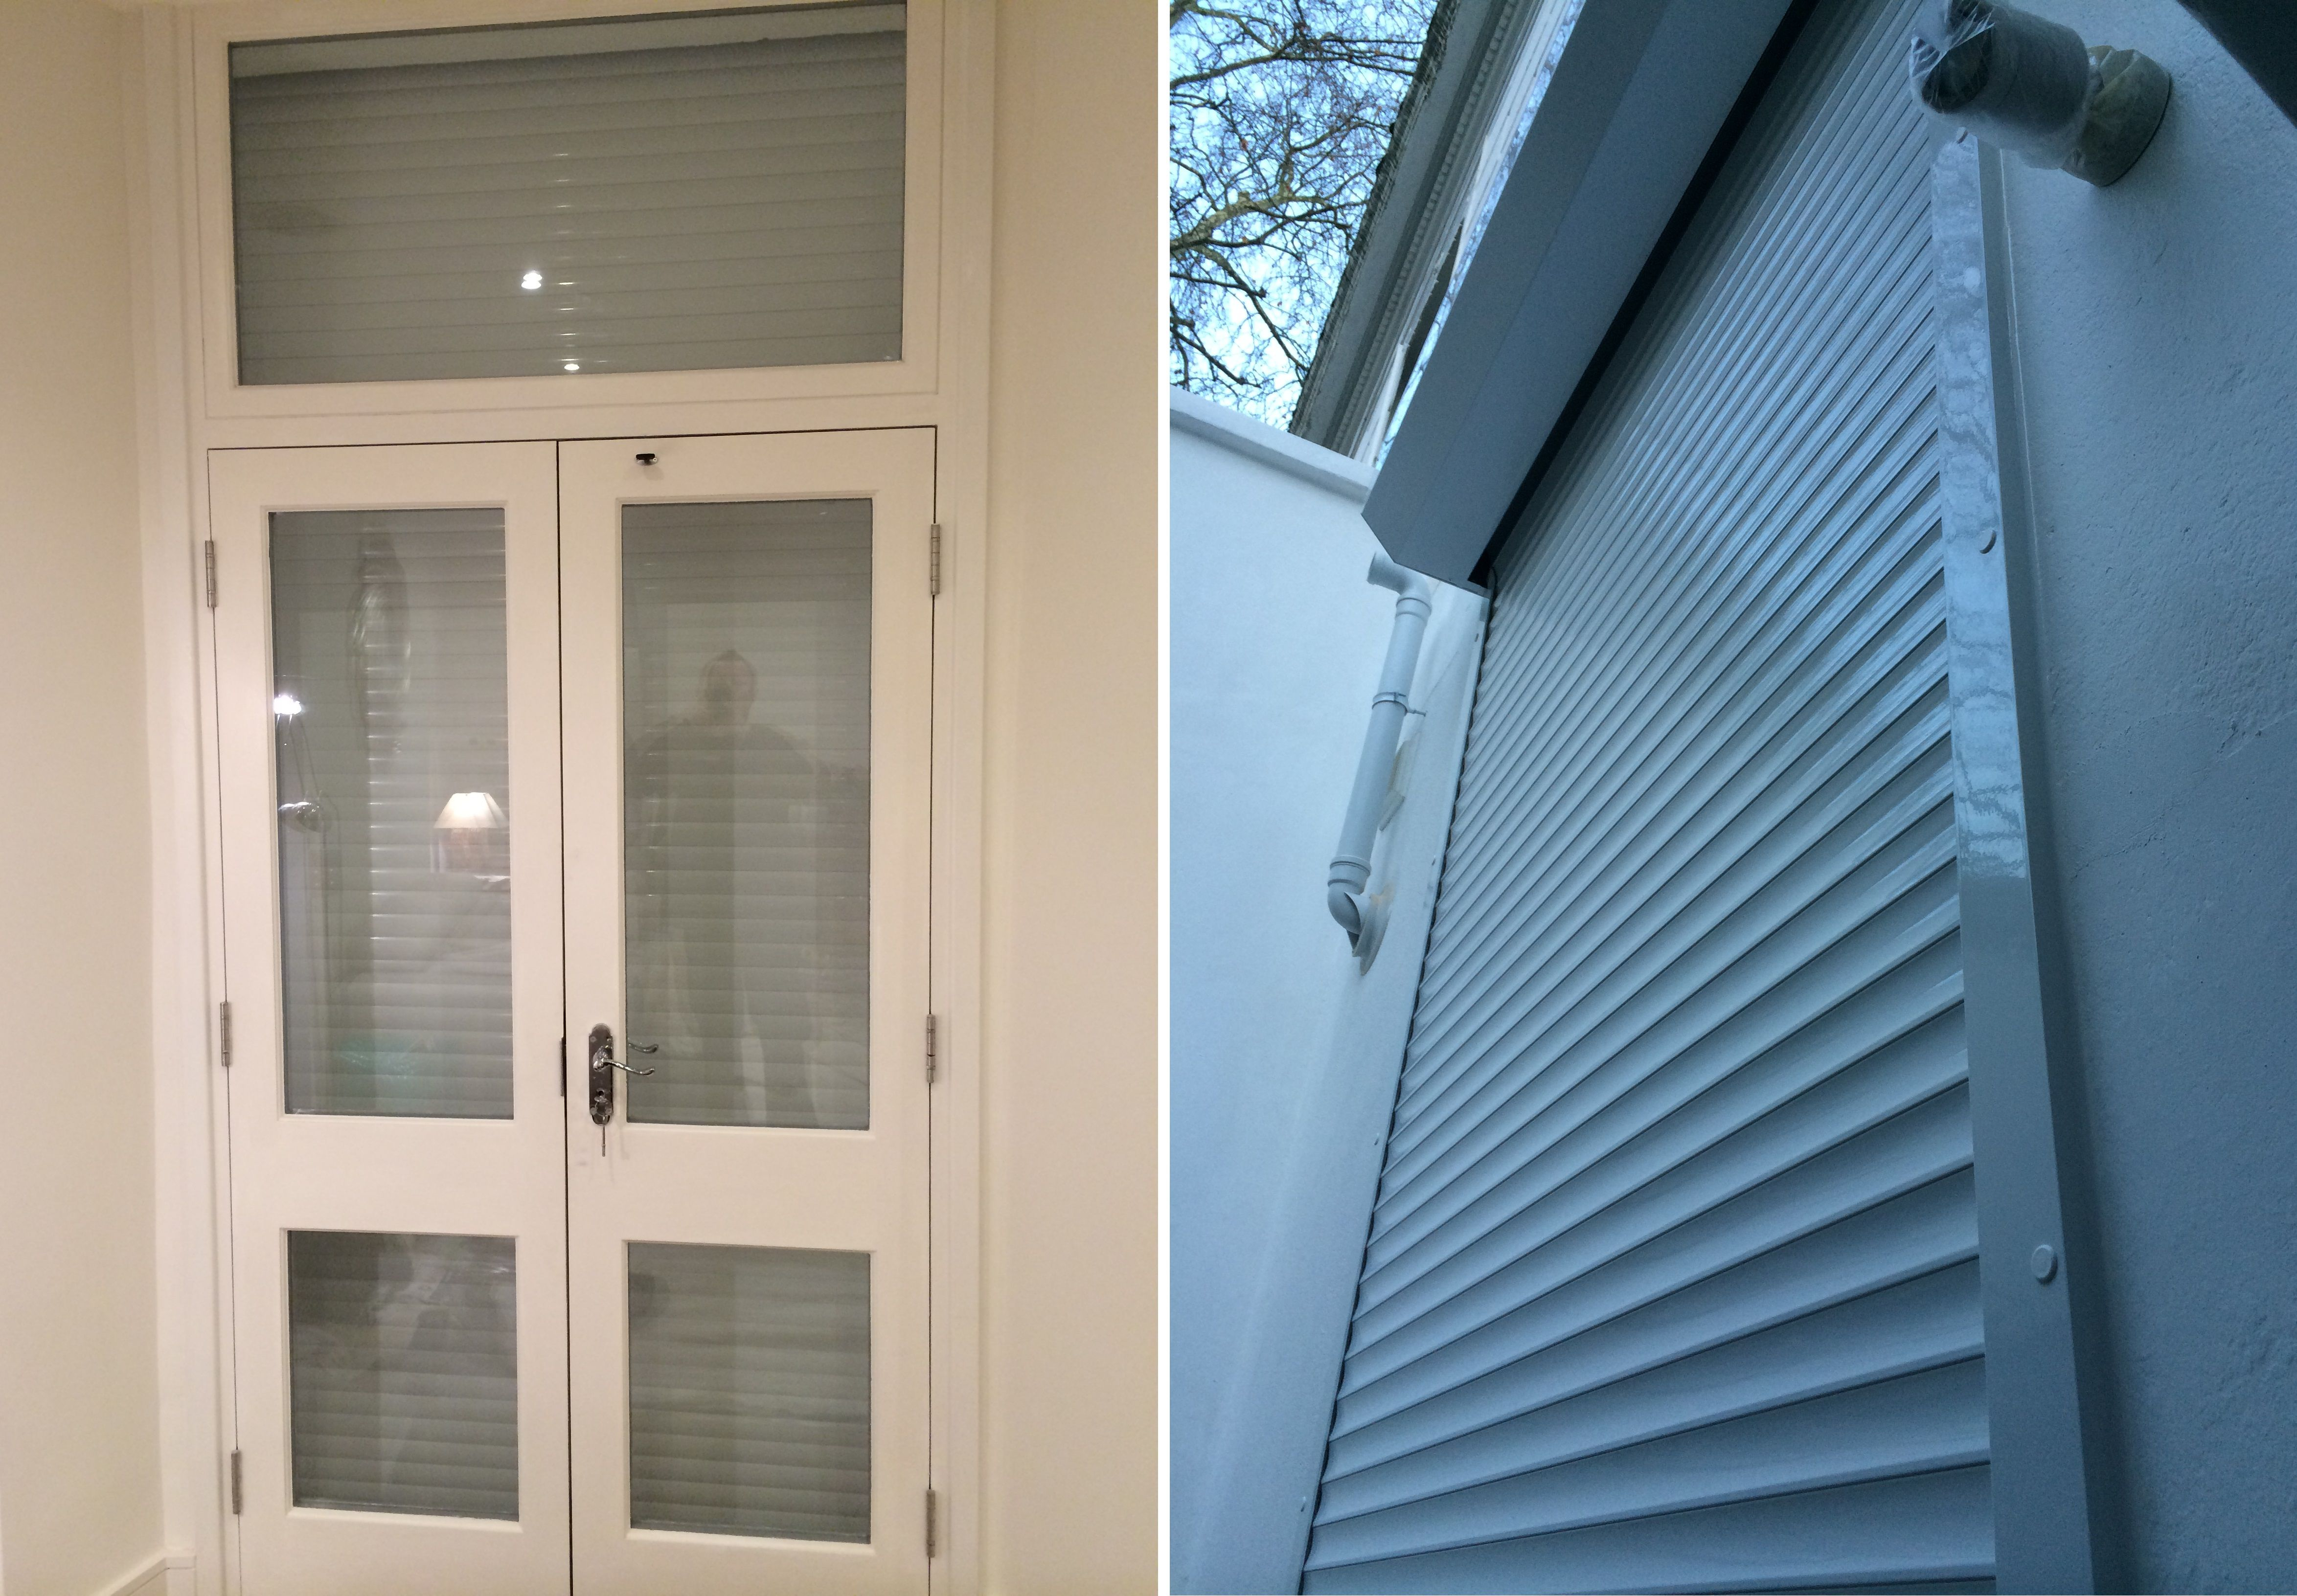 RSG5100 continental shutter solution securing rear patio doors of residential property in Earl\u0027s Court. | Security Roller Shutters | Pinterest | Patio doors ... & RSG5100 continental shutter solution securing rear patio doors of ...